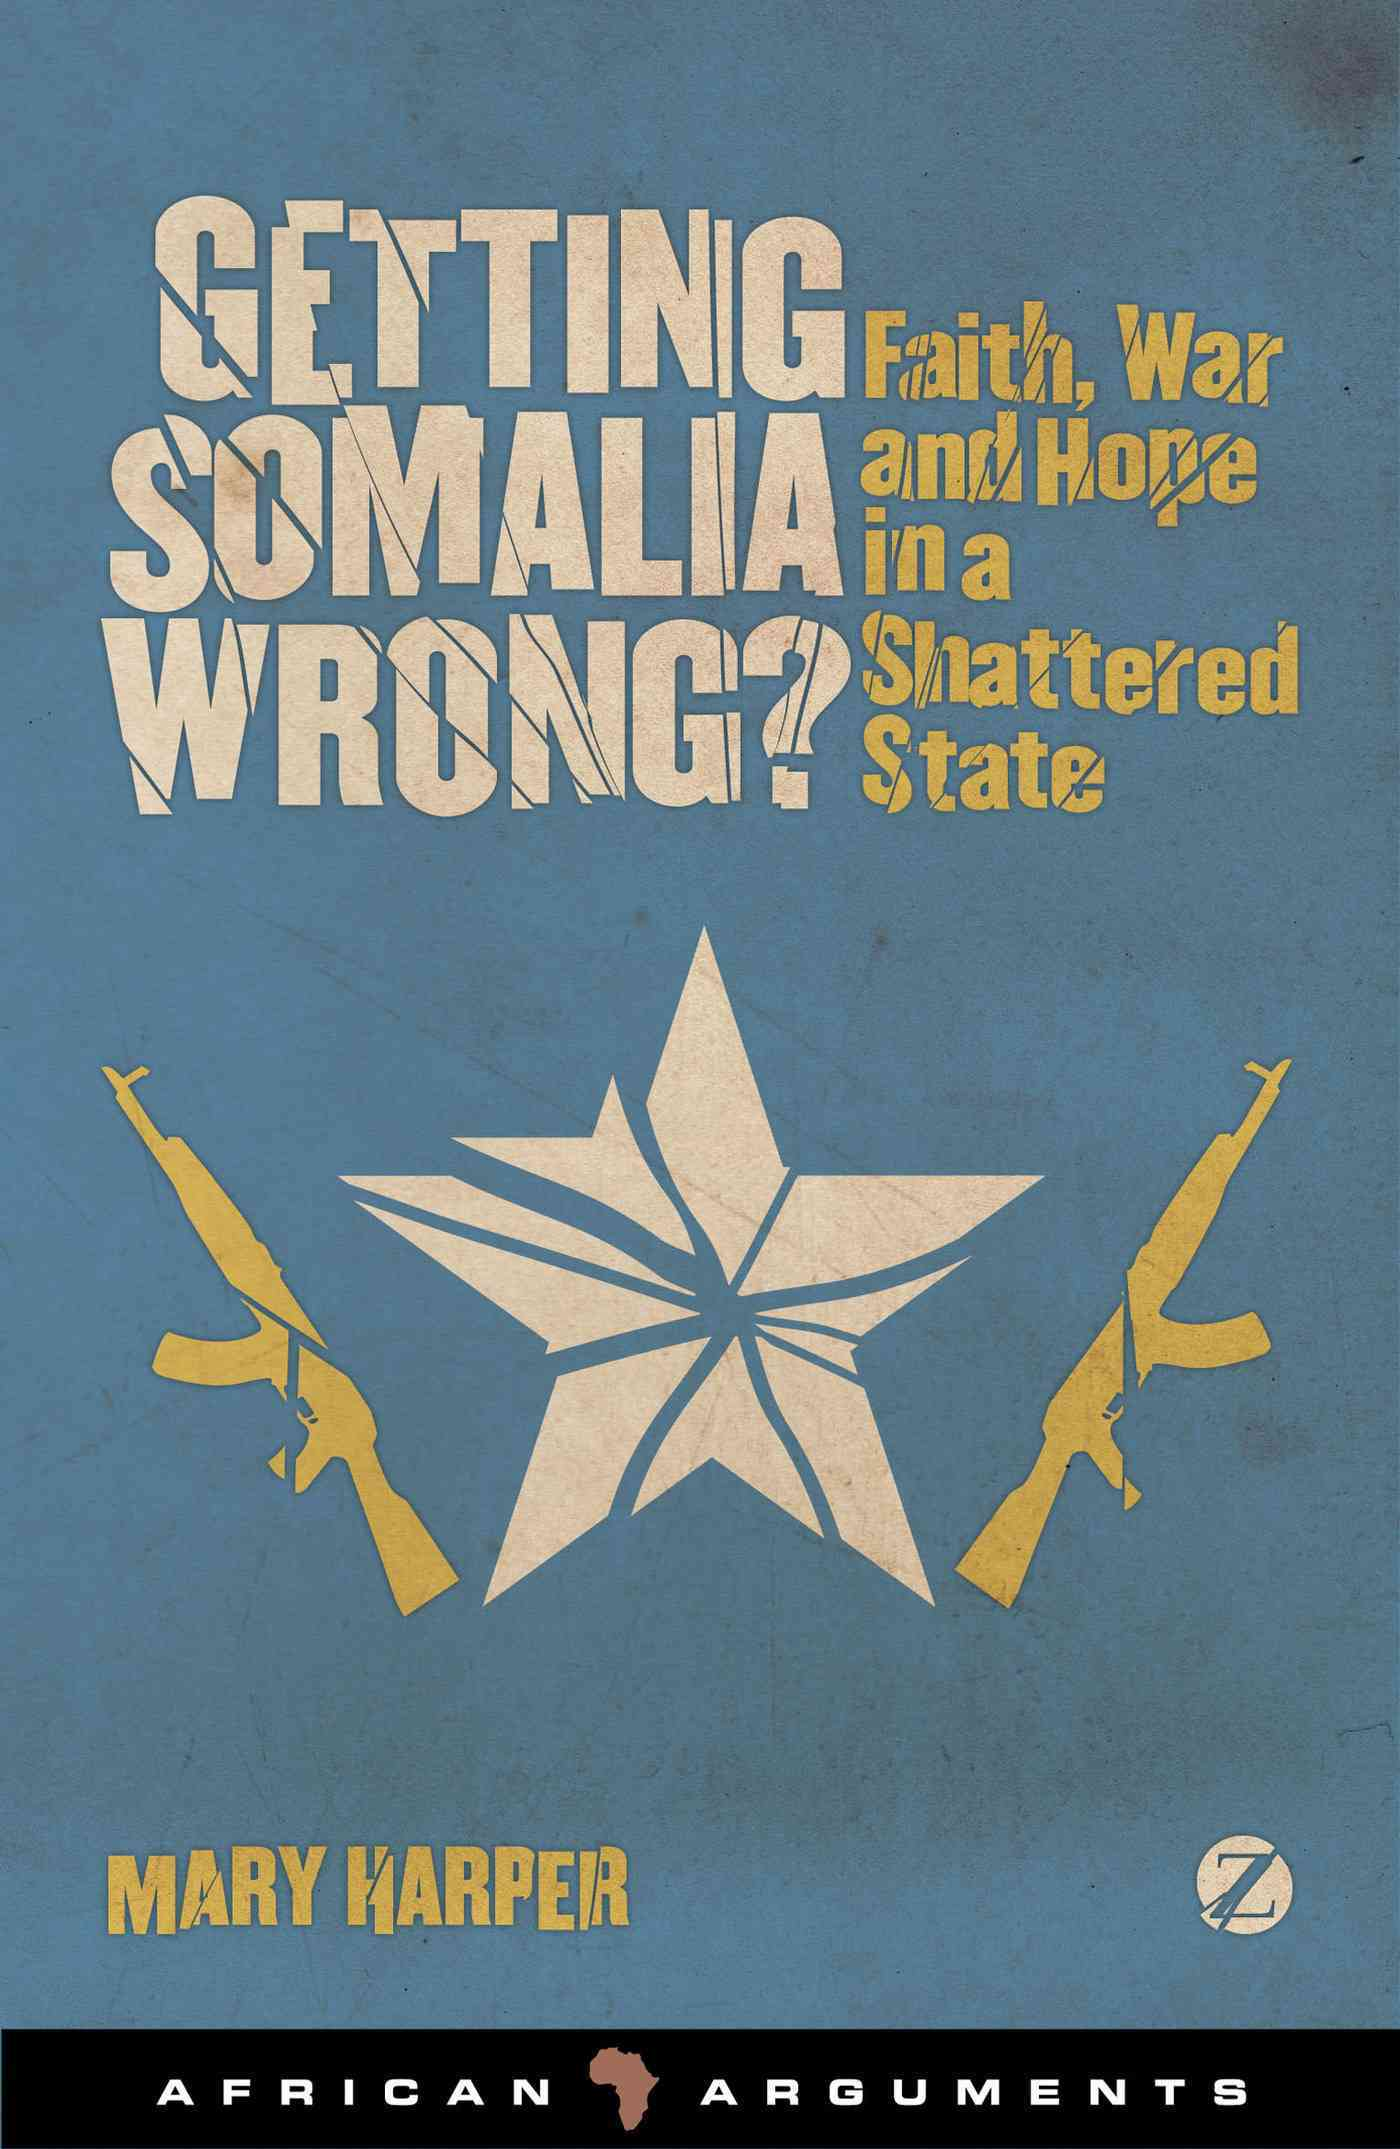 Getting Somalia Wrong? By Harper, Mary